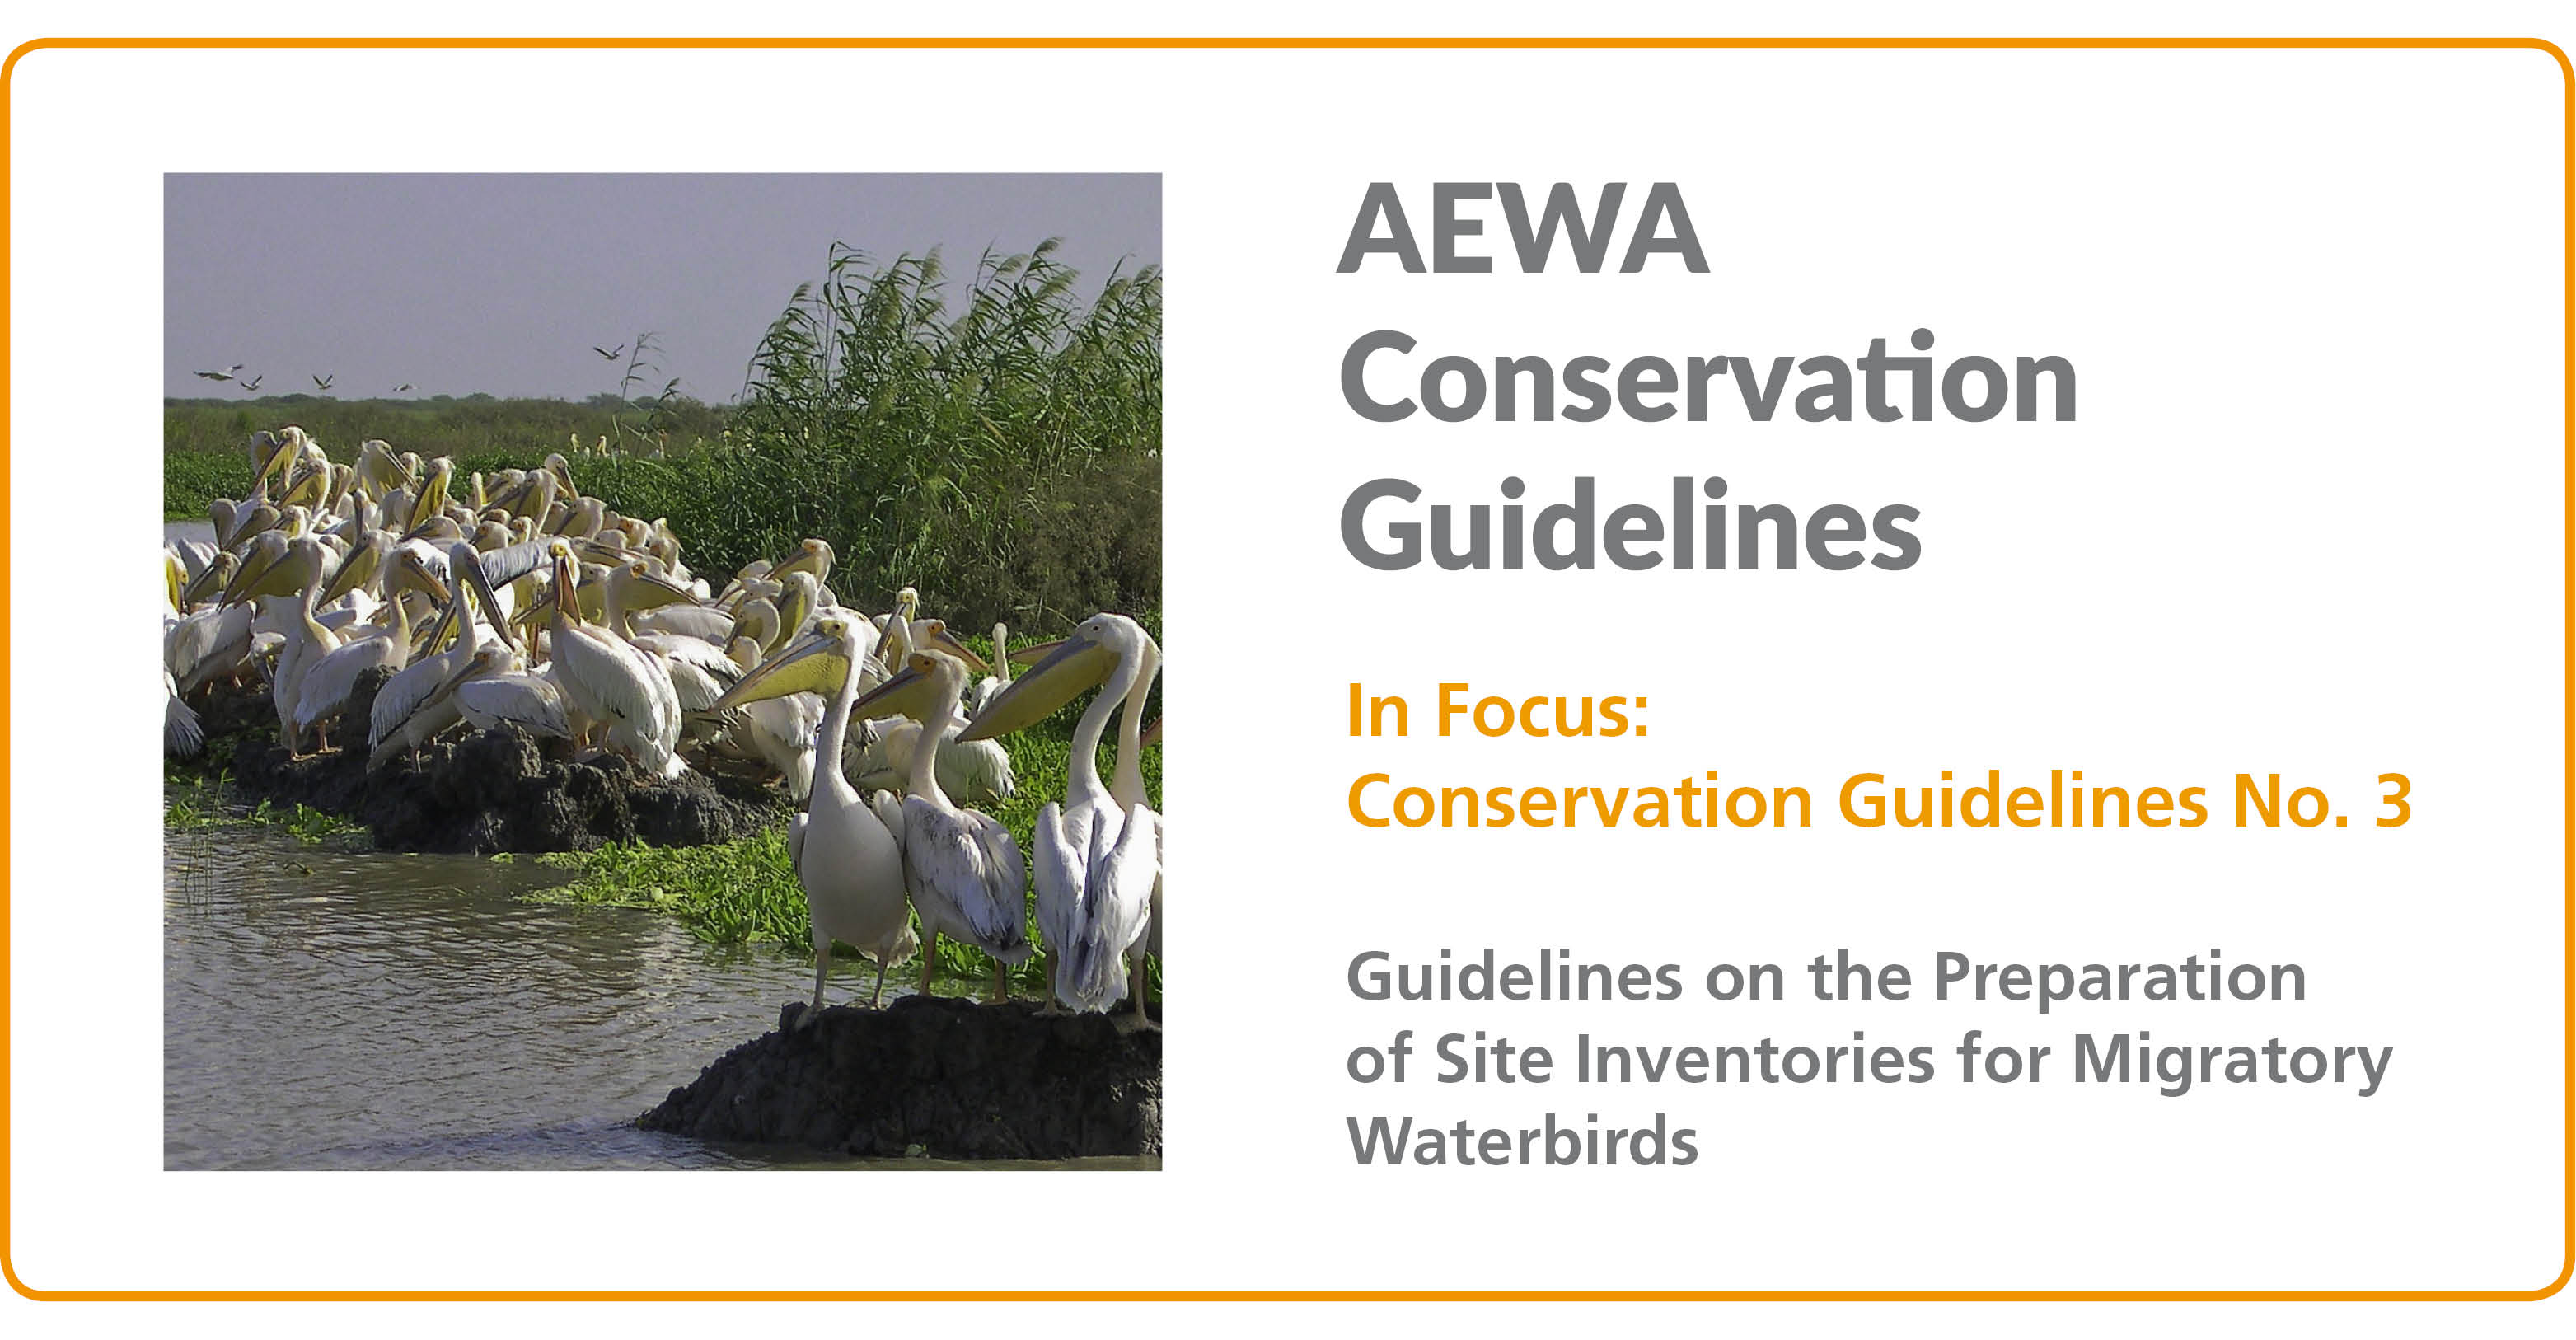 In Focus: AEWA Conservation Guideline No. 3 - Guidelines on the Preparation of Site Inventories for Migratory Waterbirds